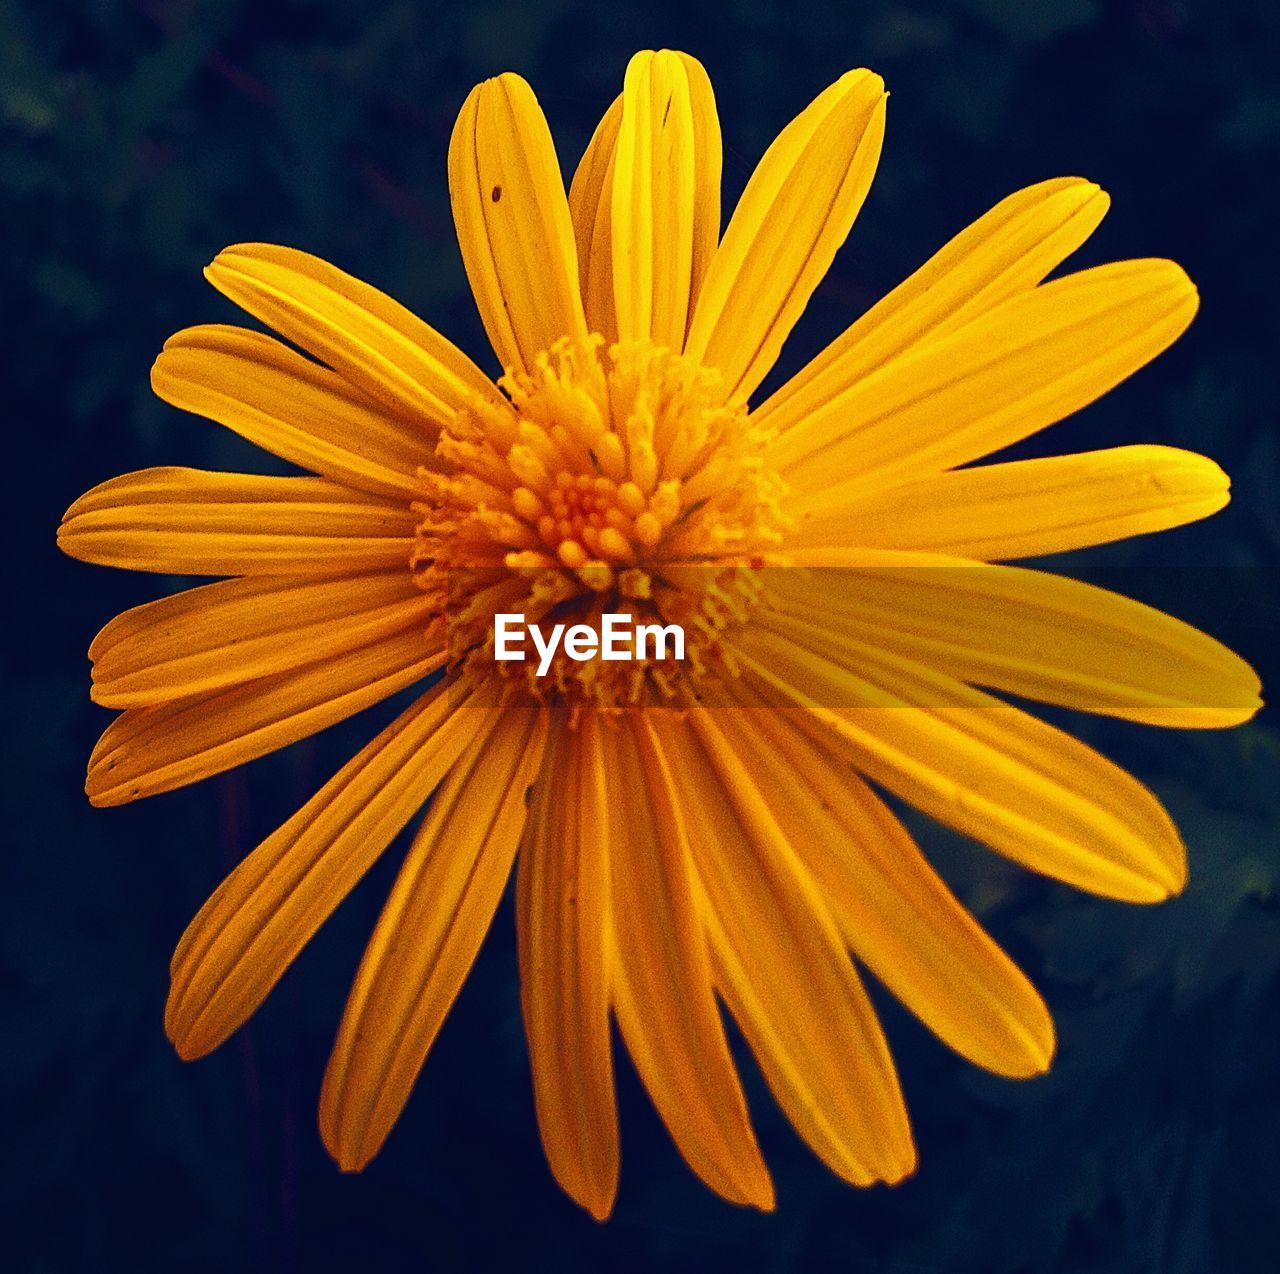 flower, flowering plant, vulnerability, fragility, freshness, petal, yellow, flower head, beauty in nature, plant, growth, inflorescence, close-up, pollen, focus on foreground, nature, no people, day, botany, gazania